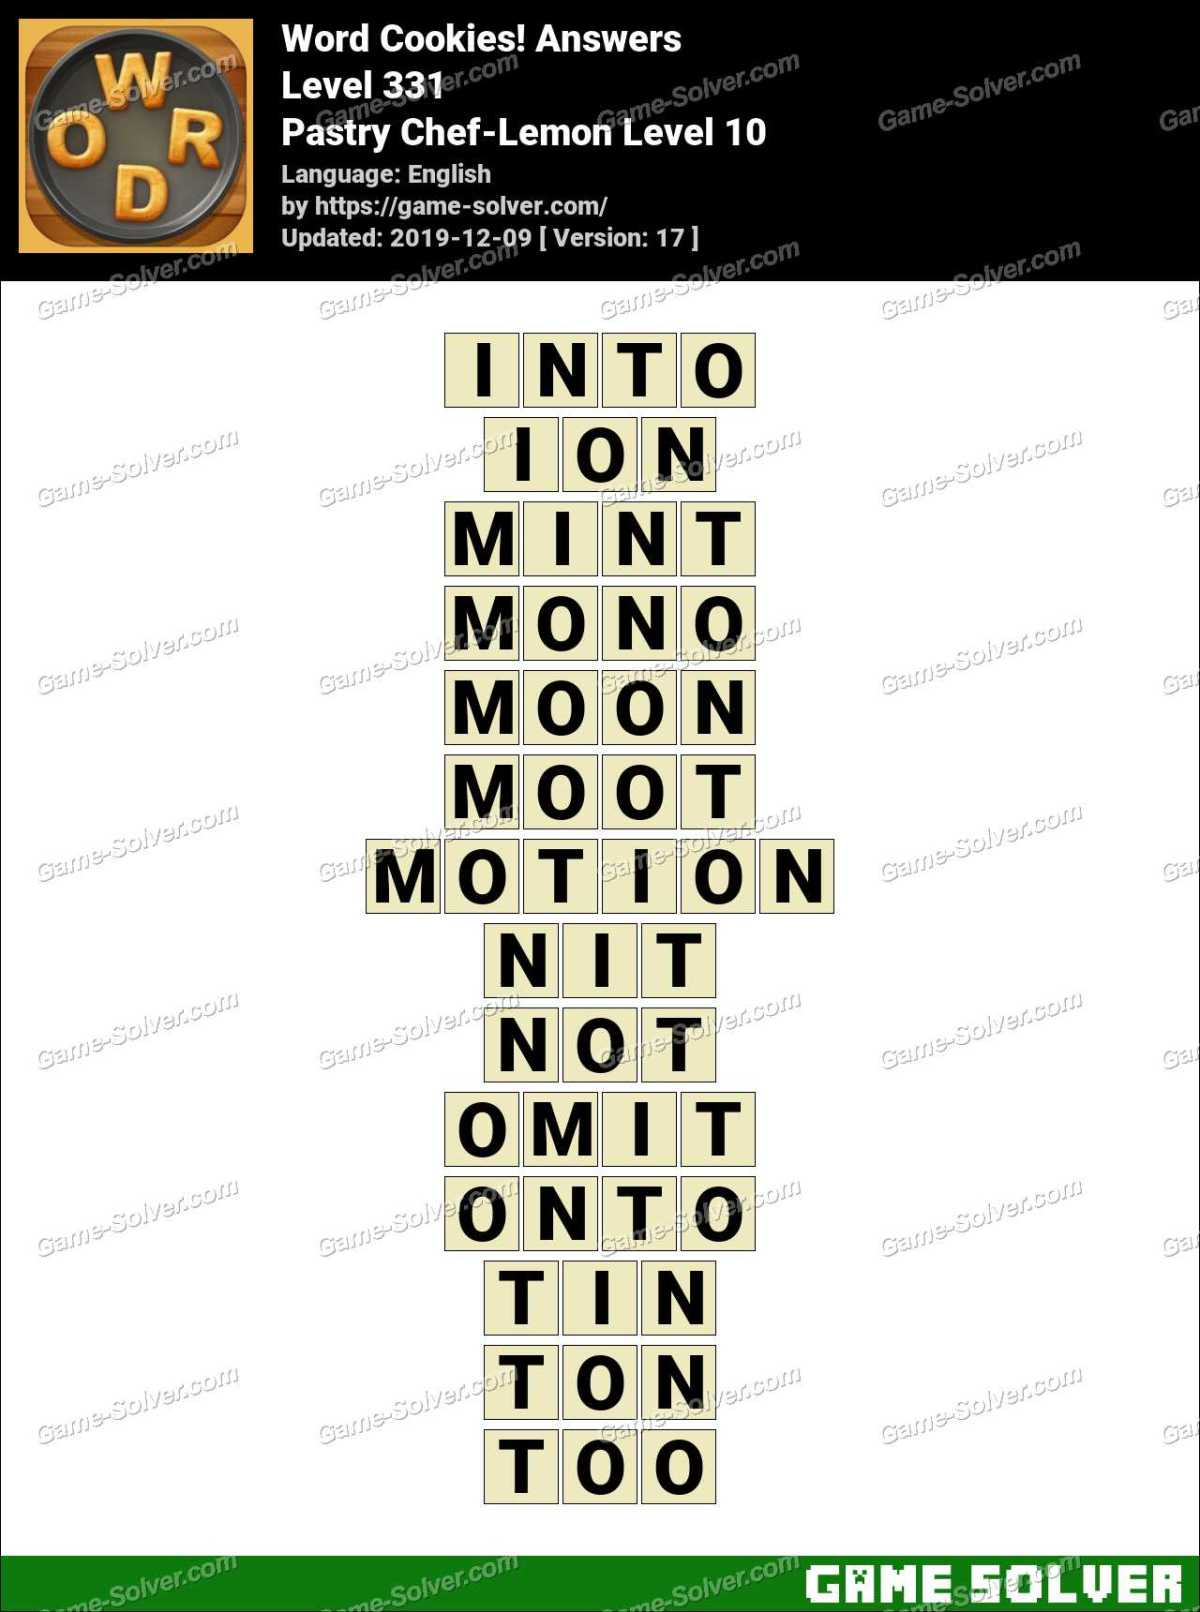 Word Cookies Pastry Chef-Lemon Level 10 Answers